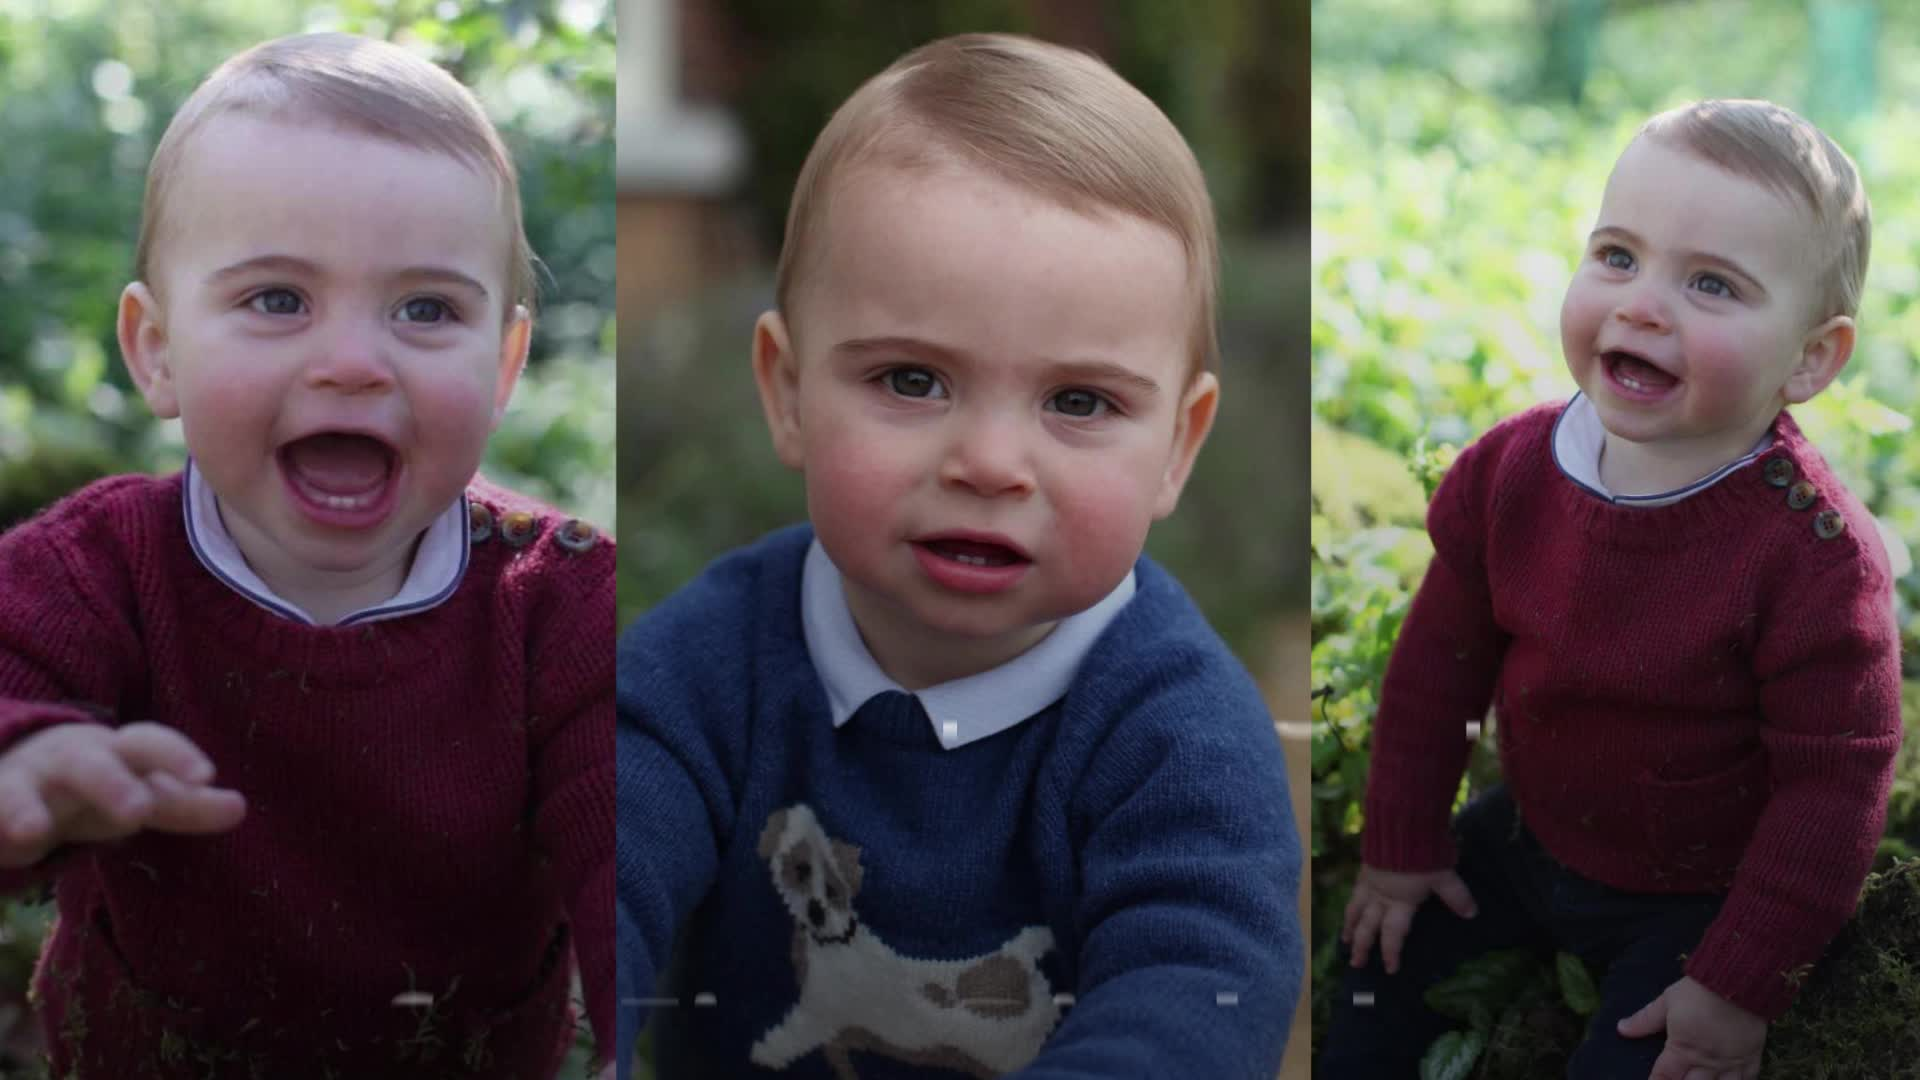 Kate Middleton and Prince William release three new photos of Prince Louis ahead of his first birthday